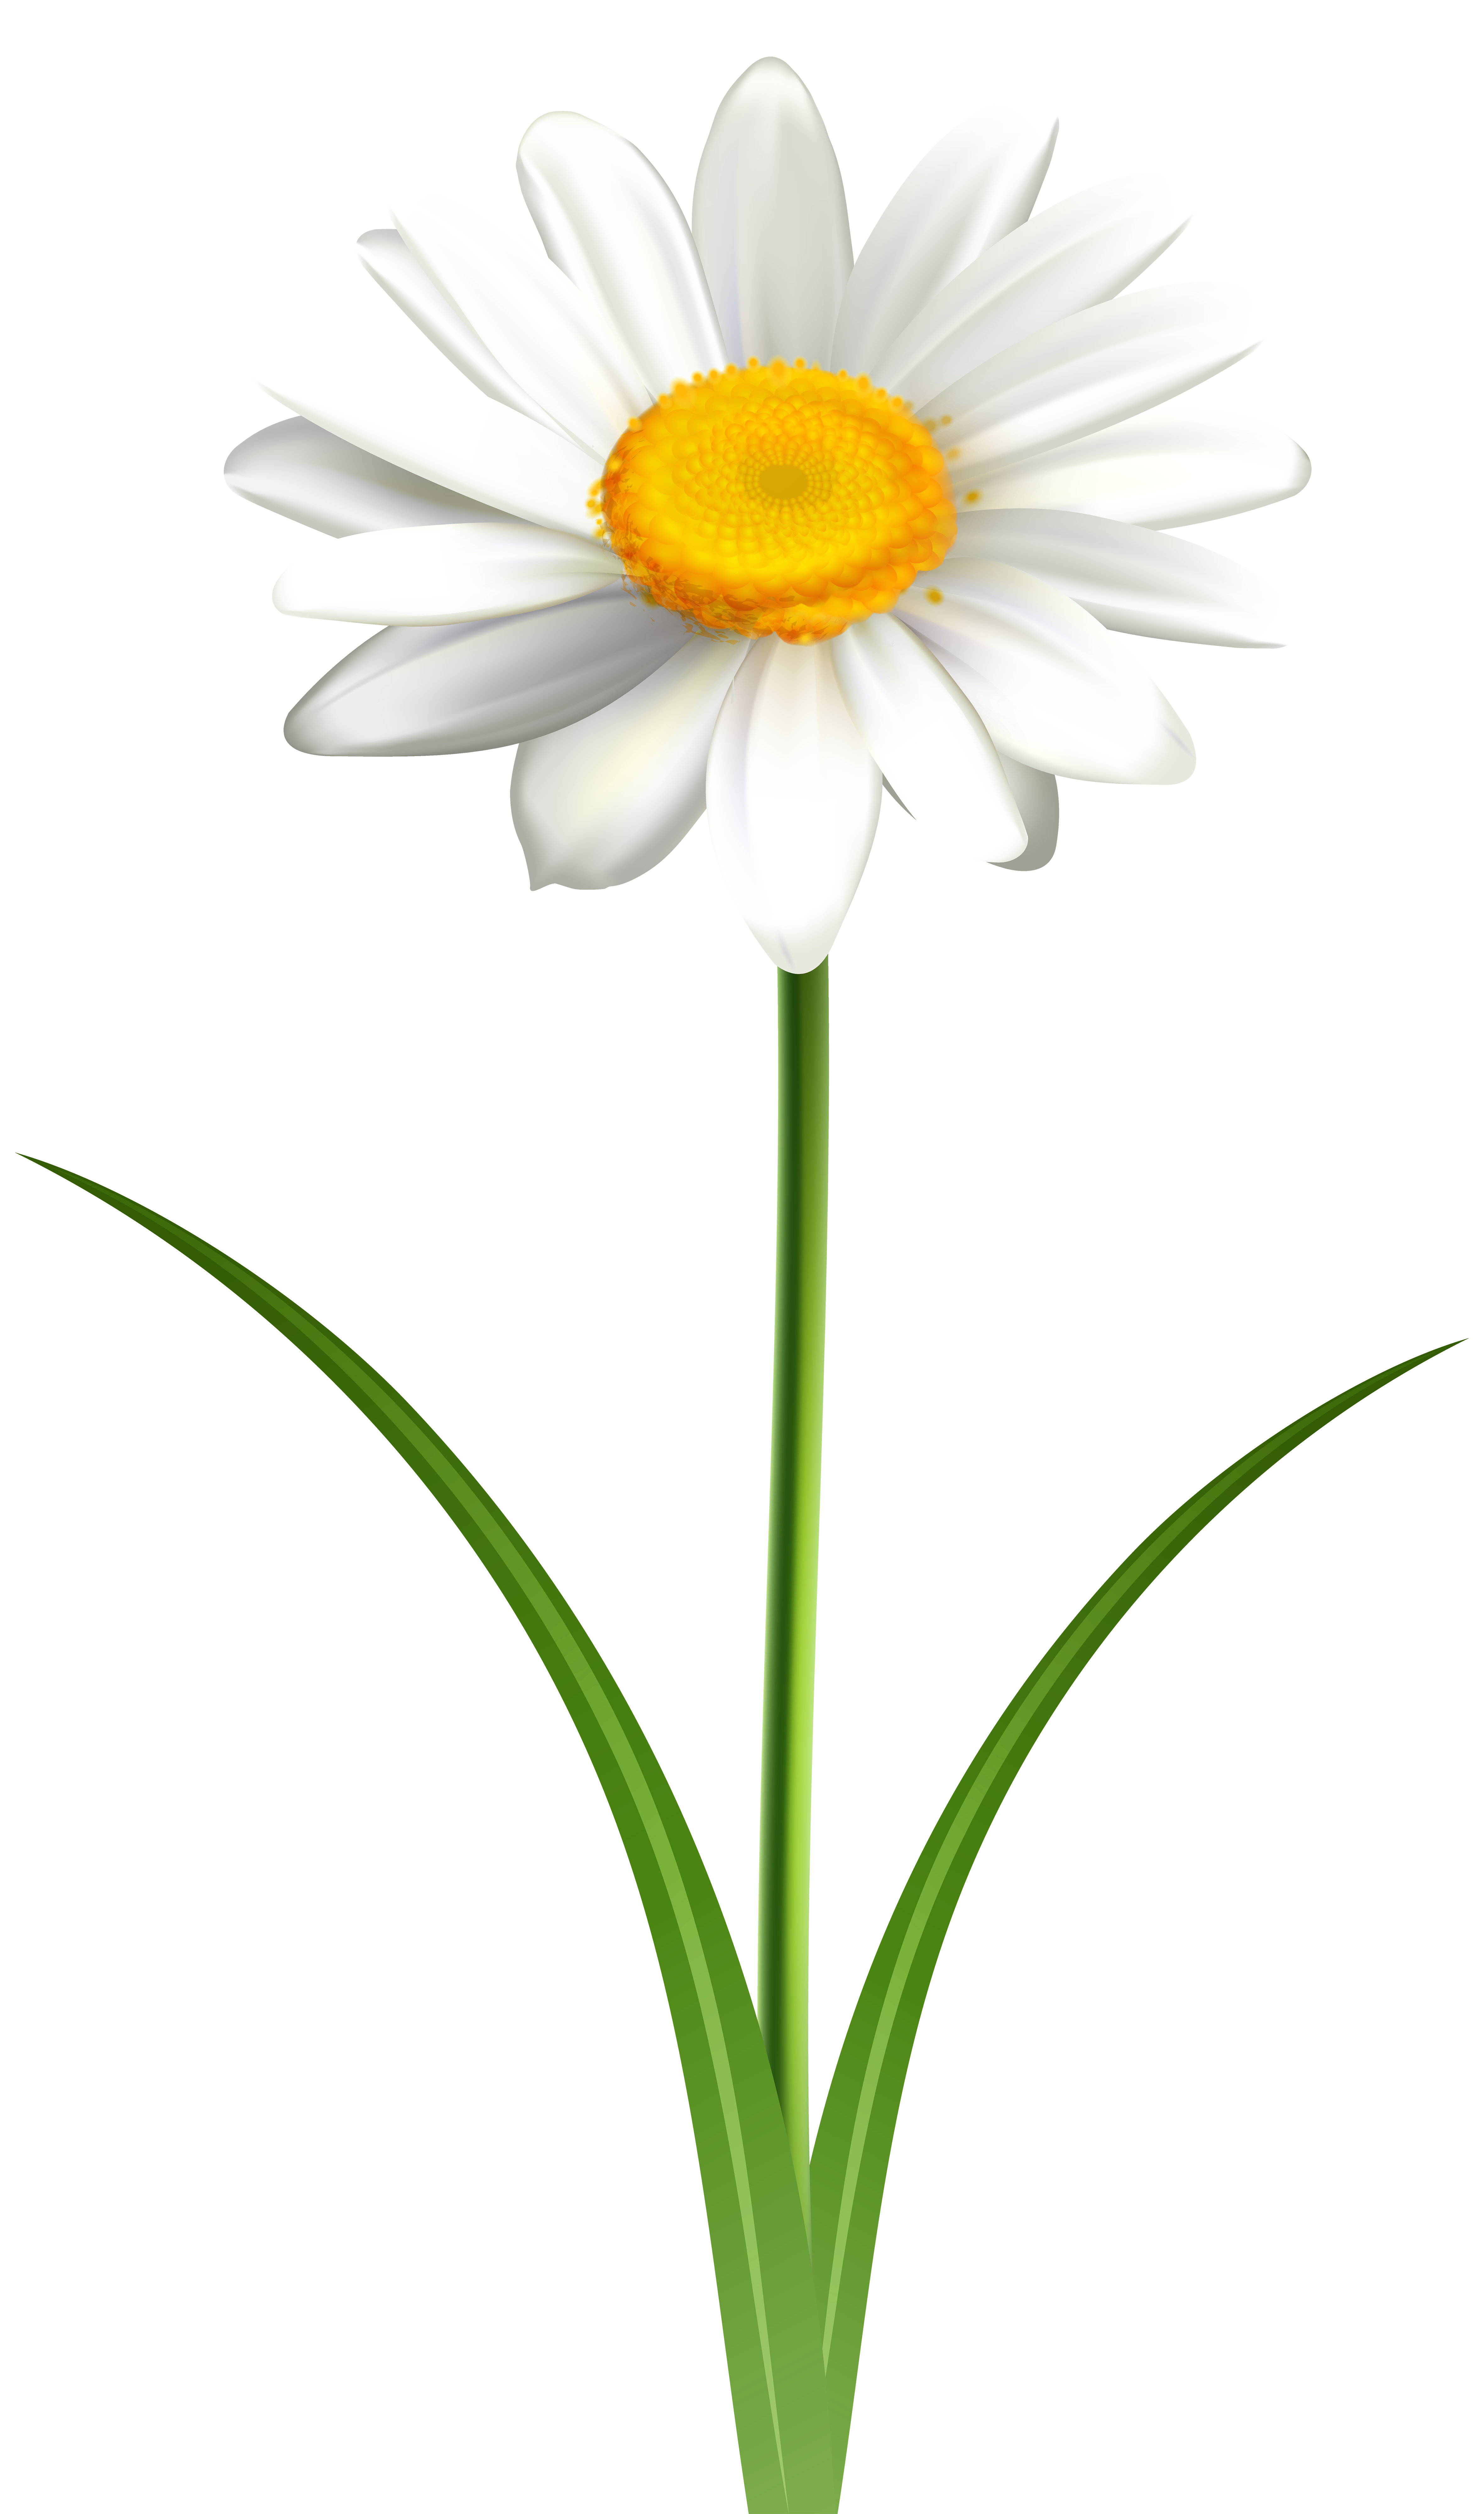 Daisy images clipart clip freeuse Daisy Flower Transparent PNG Clip Art Image | Gallery Yopriceville ... clip freeuse